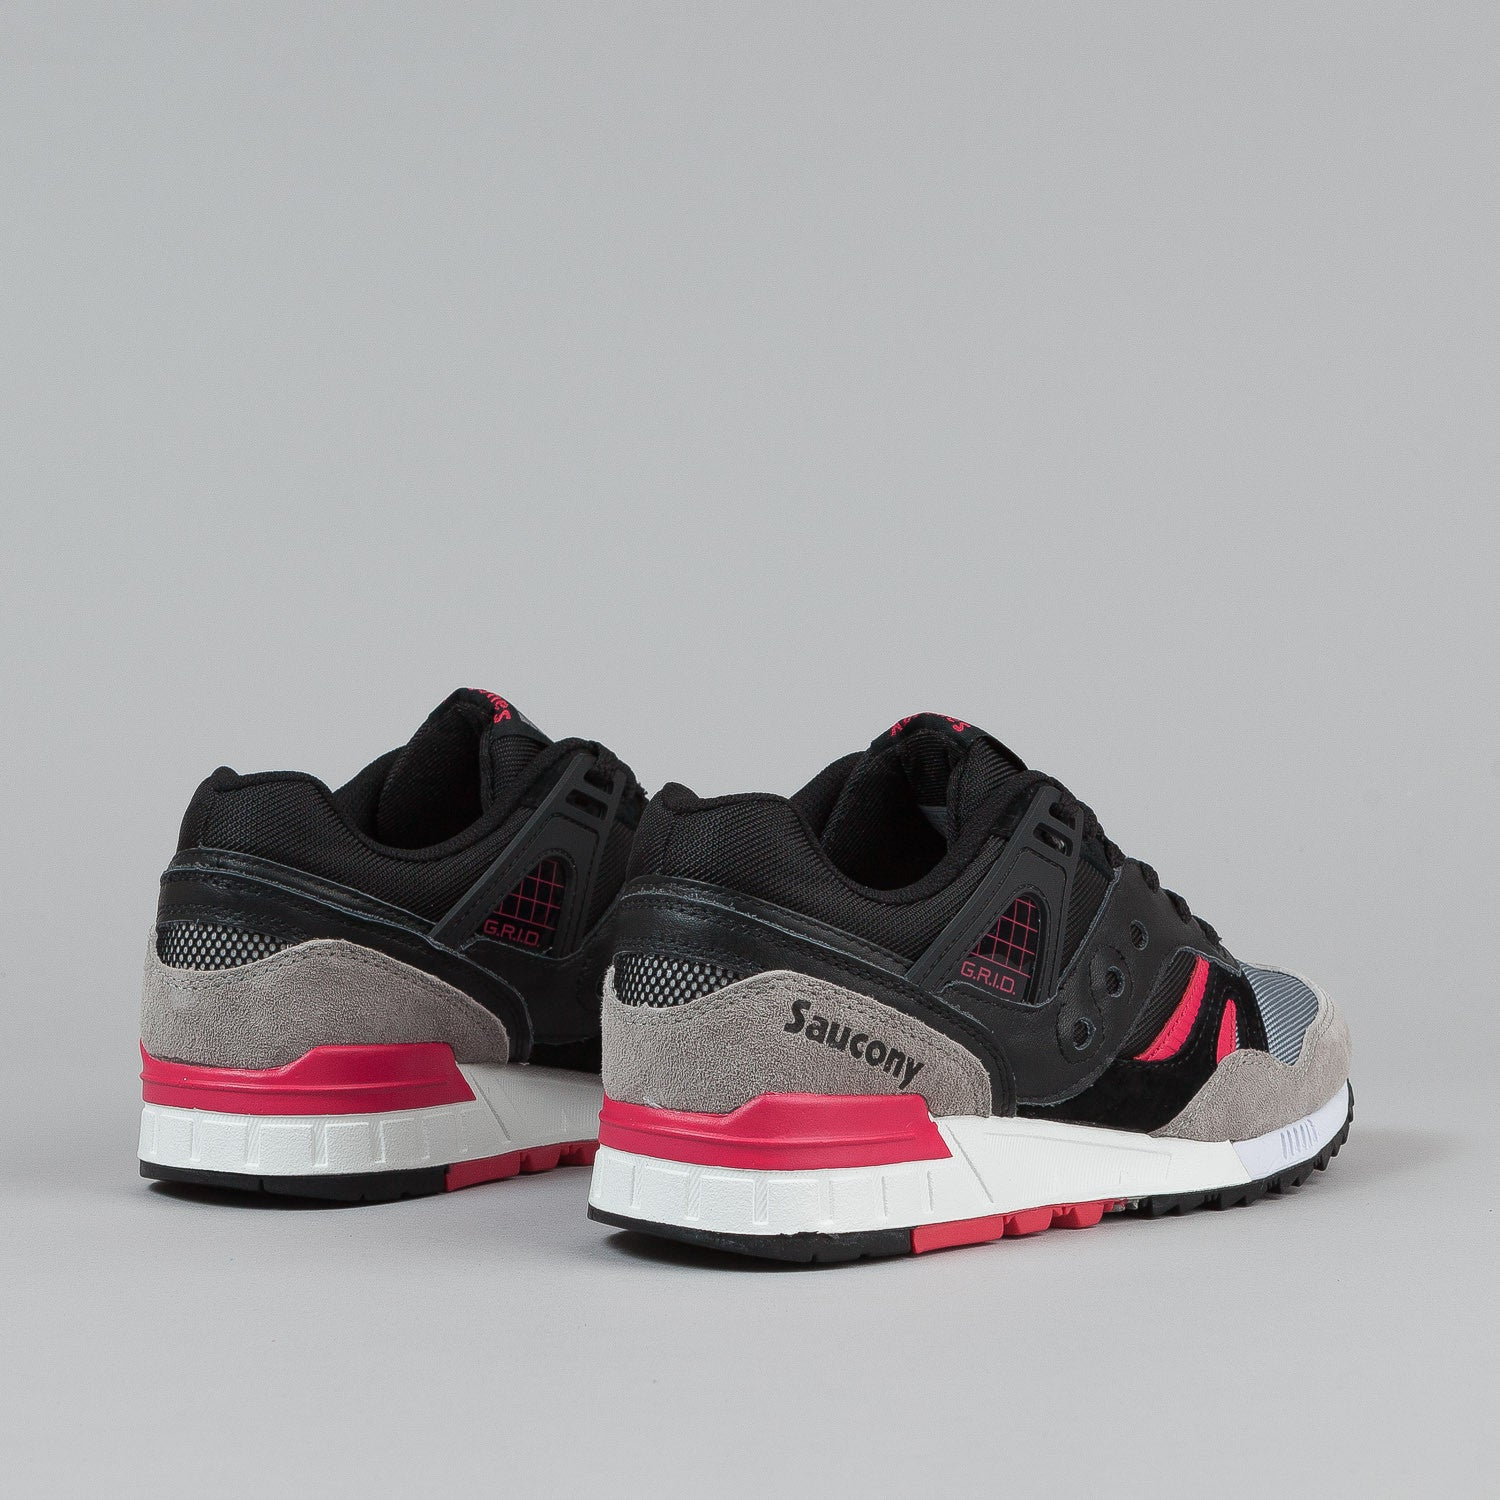 Saucony Grid SD Premium Shoes 'Grid Games' - Black / Grey